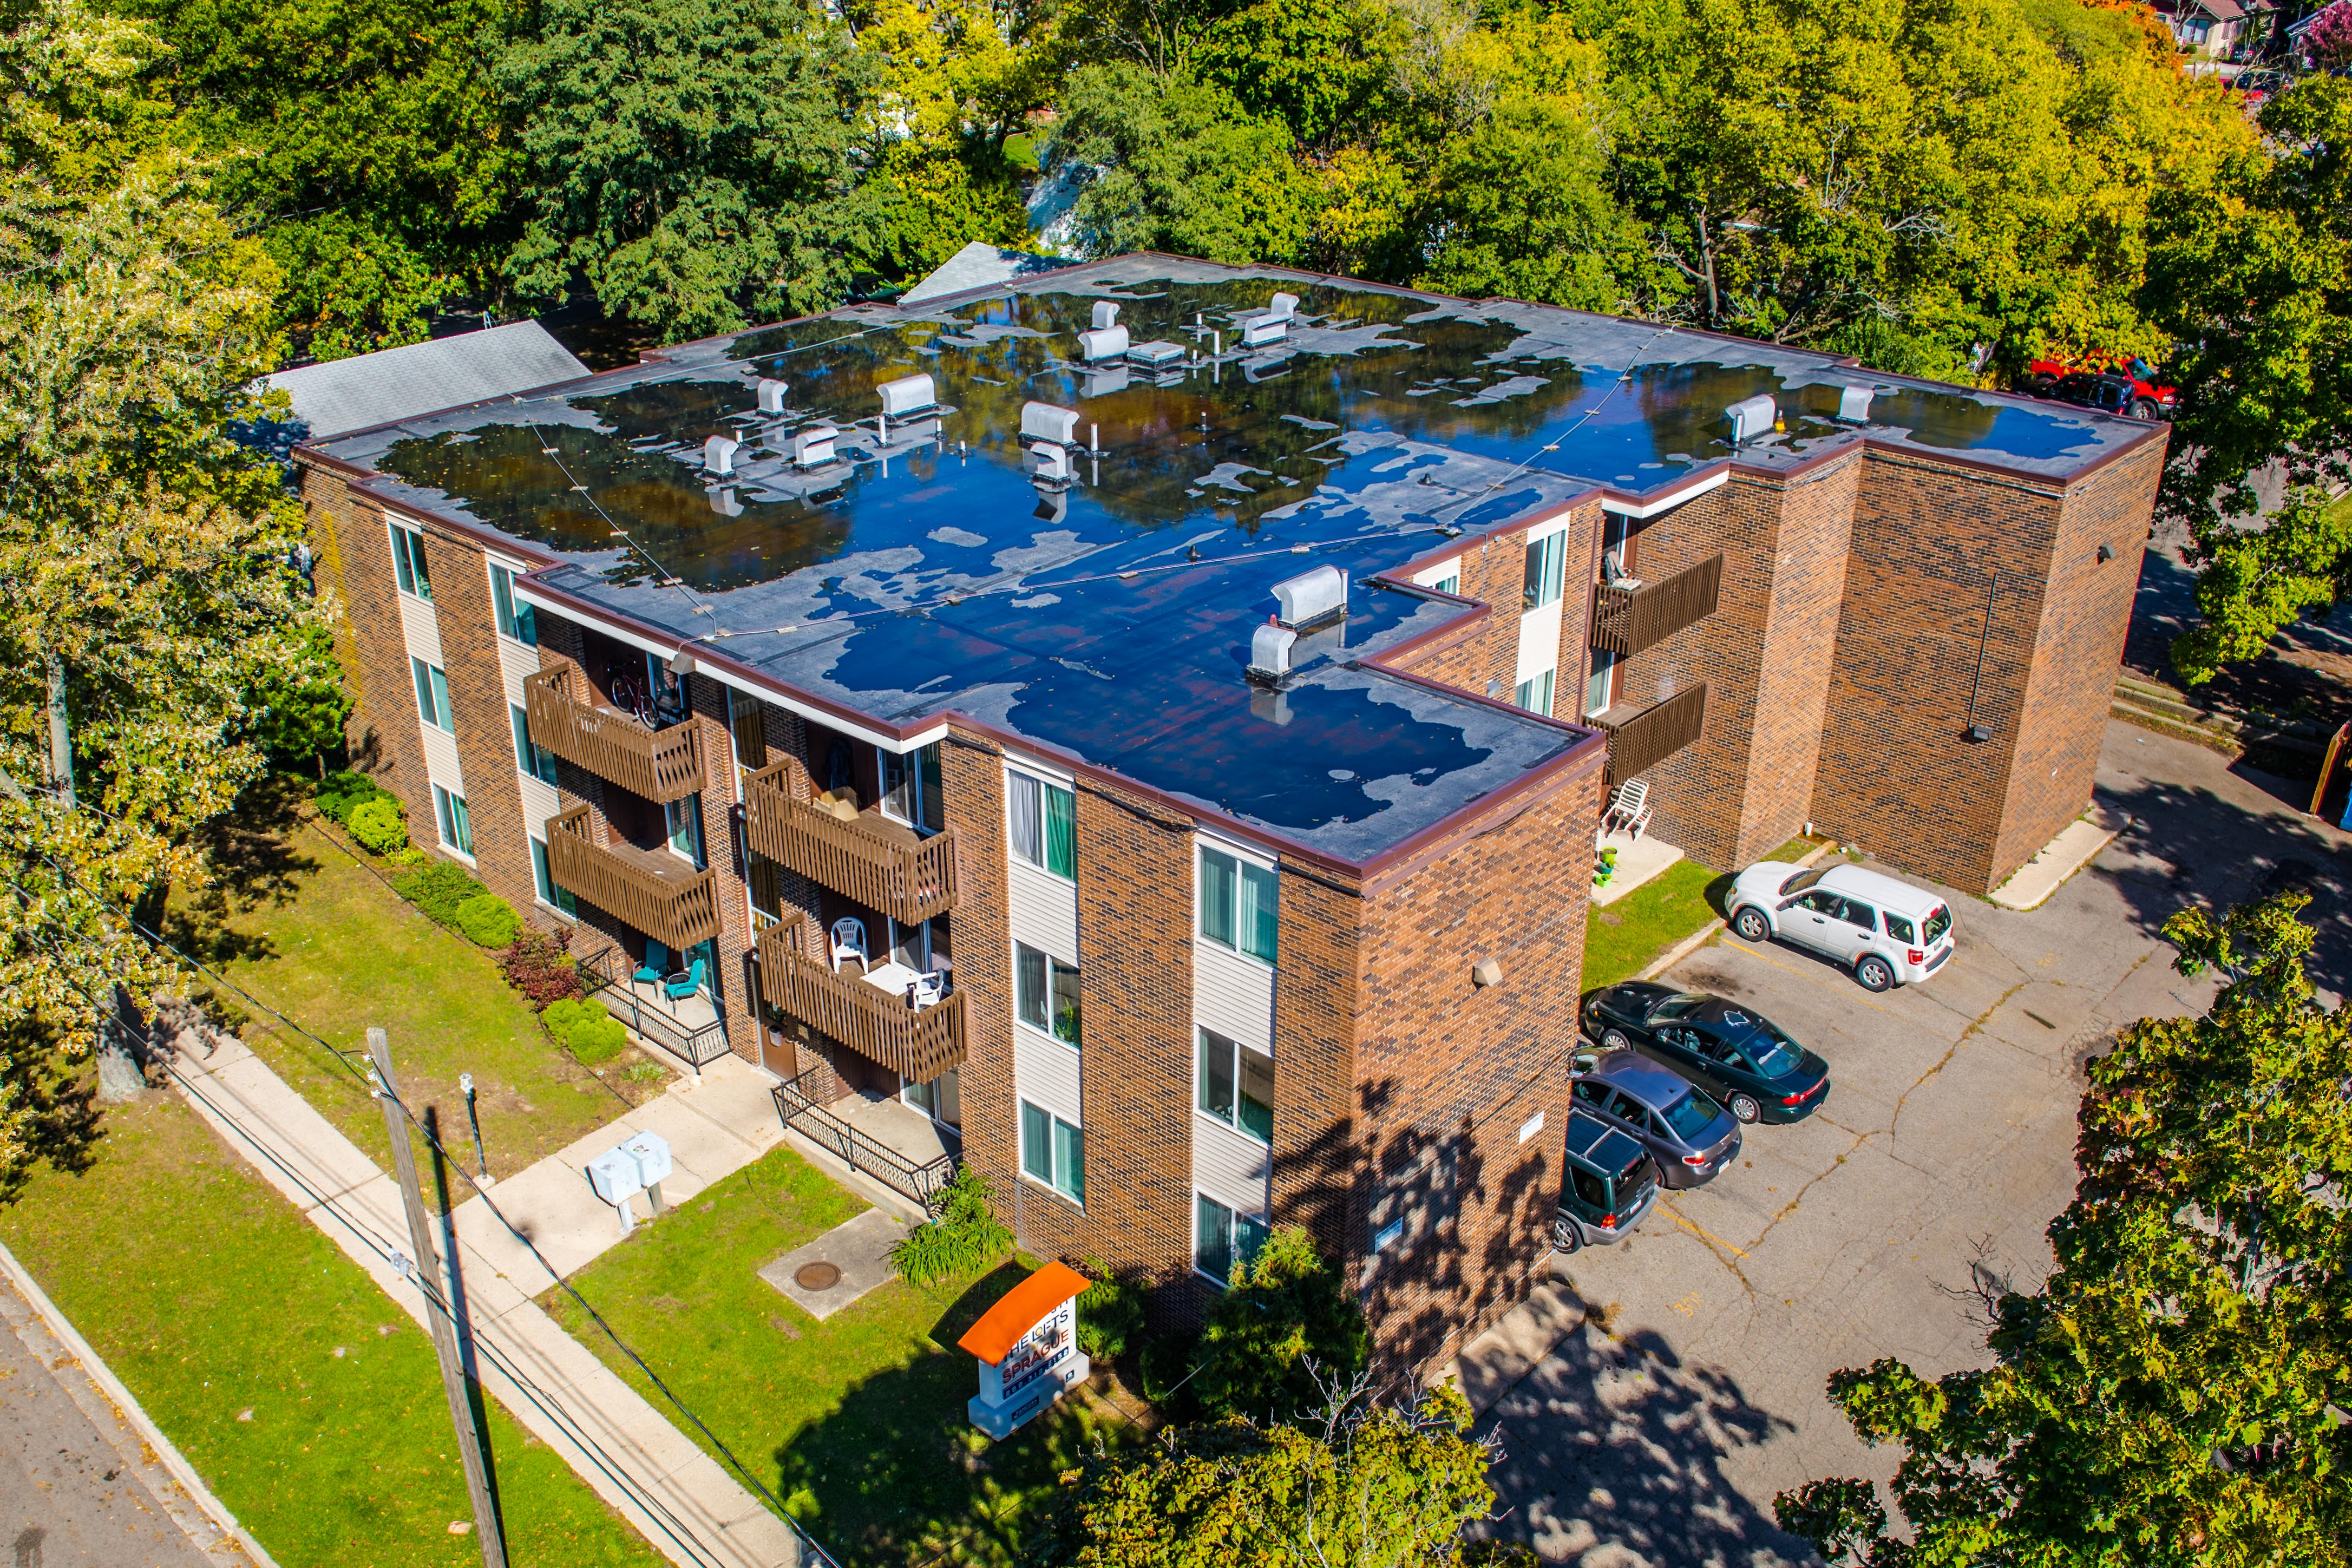 511 Sprague  PRE LEASING FOR FALL 2018: SPACIOUS, RECENTLY RENOVATED & AFFORDABLE